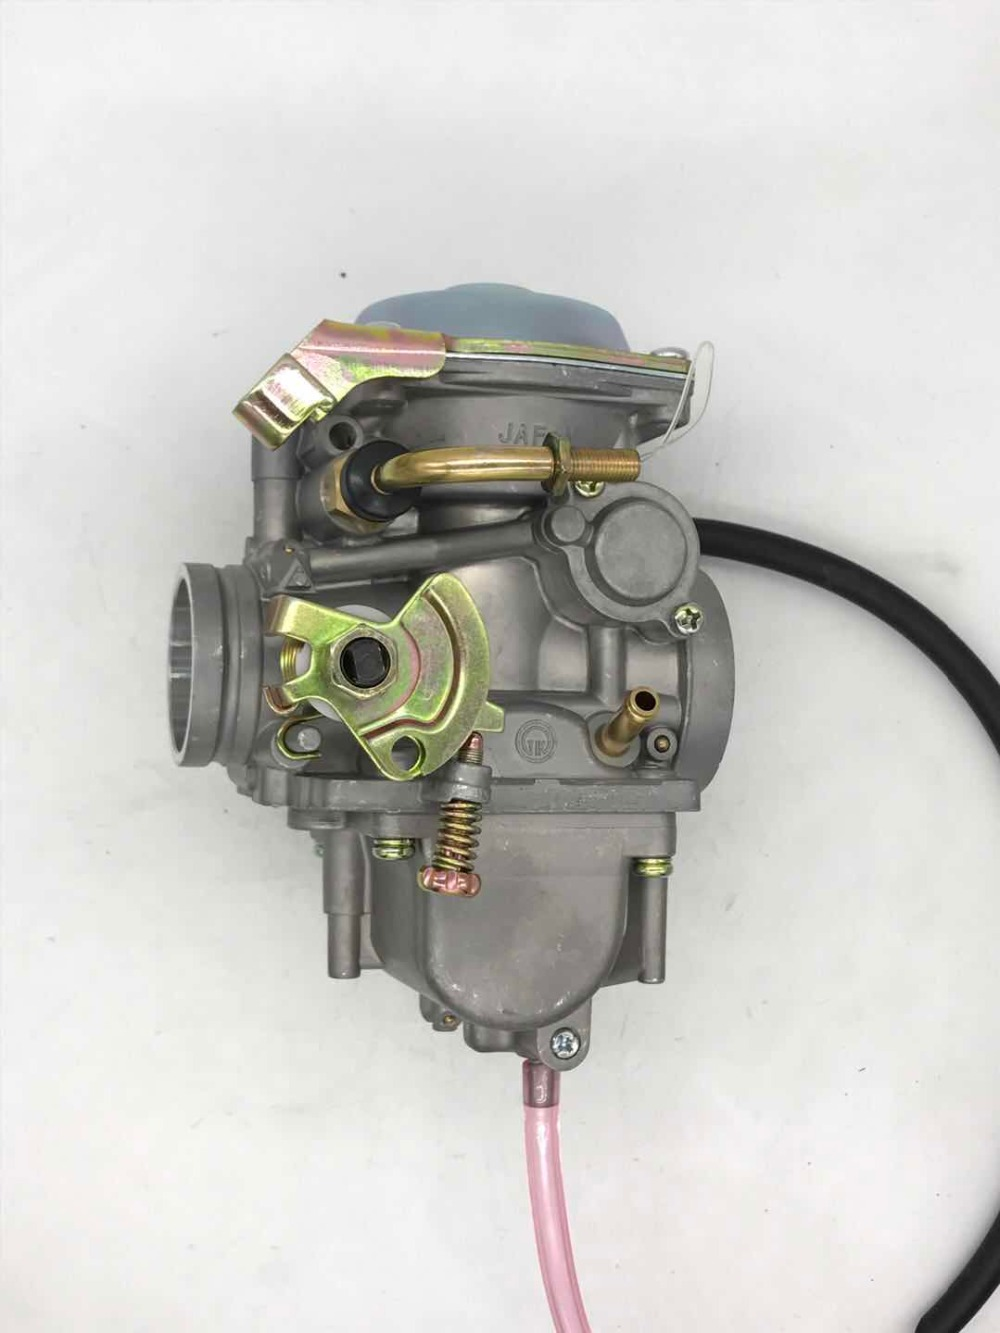 34mm Carburetor for Roketa ATV 11 JIANSHE JS400 Mountain Lion 400cc Polaris Ranger 500 ATV YAMABUGGY 34mm carburetor for roketa atv 11 jianshe js400 mountain lion 400cc